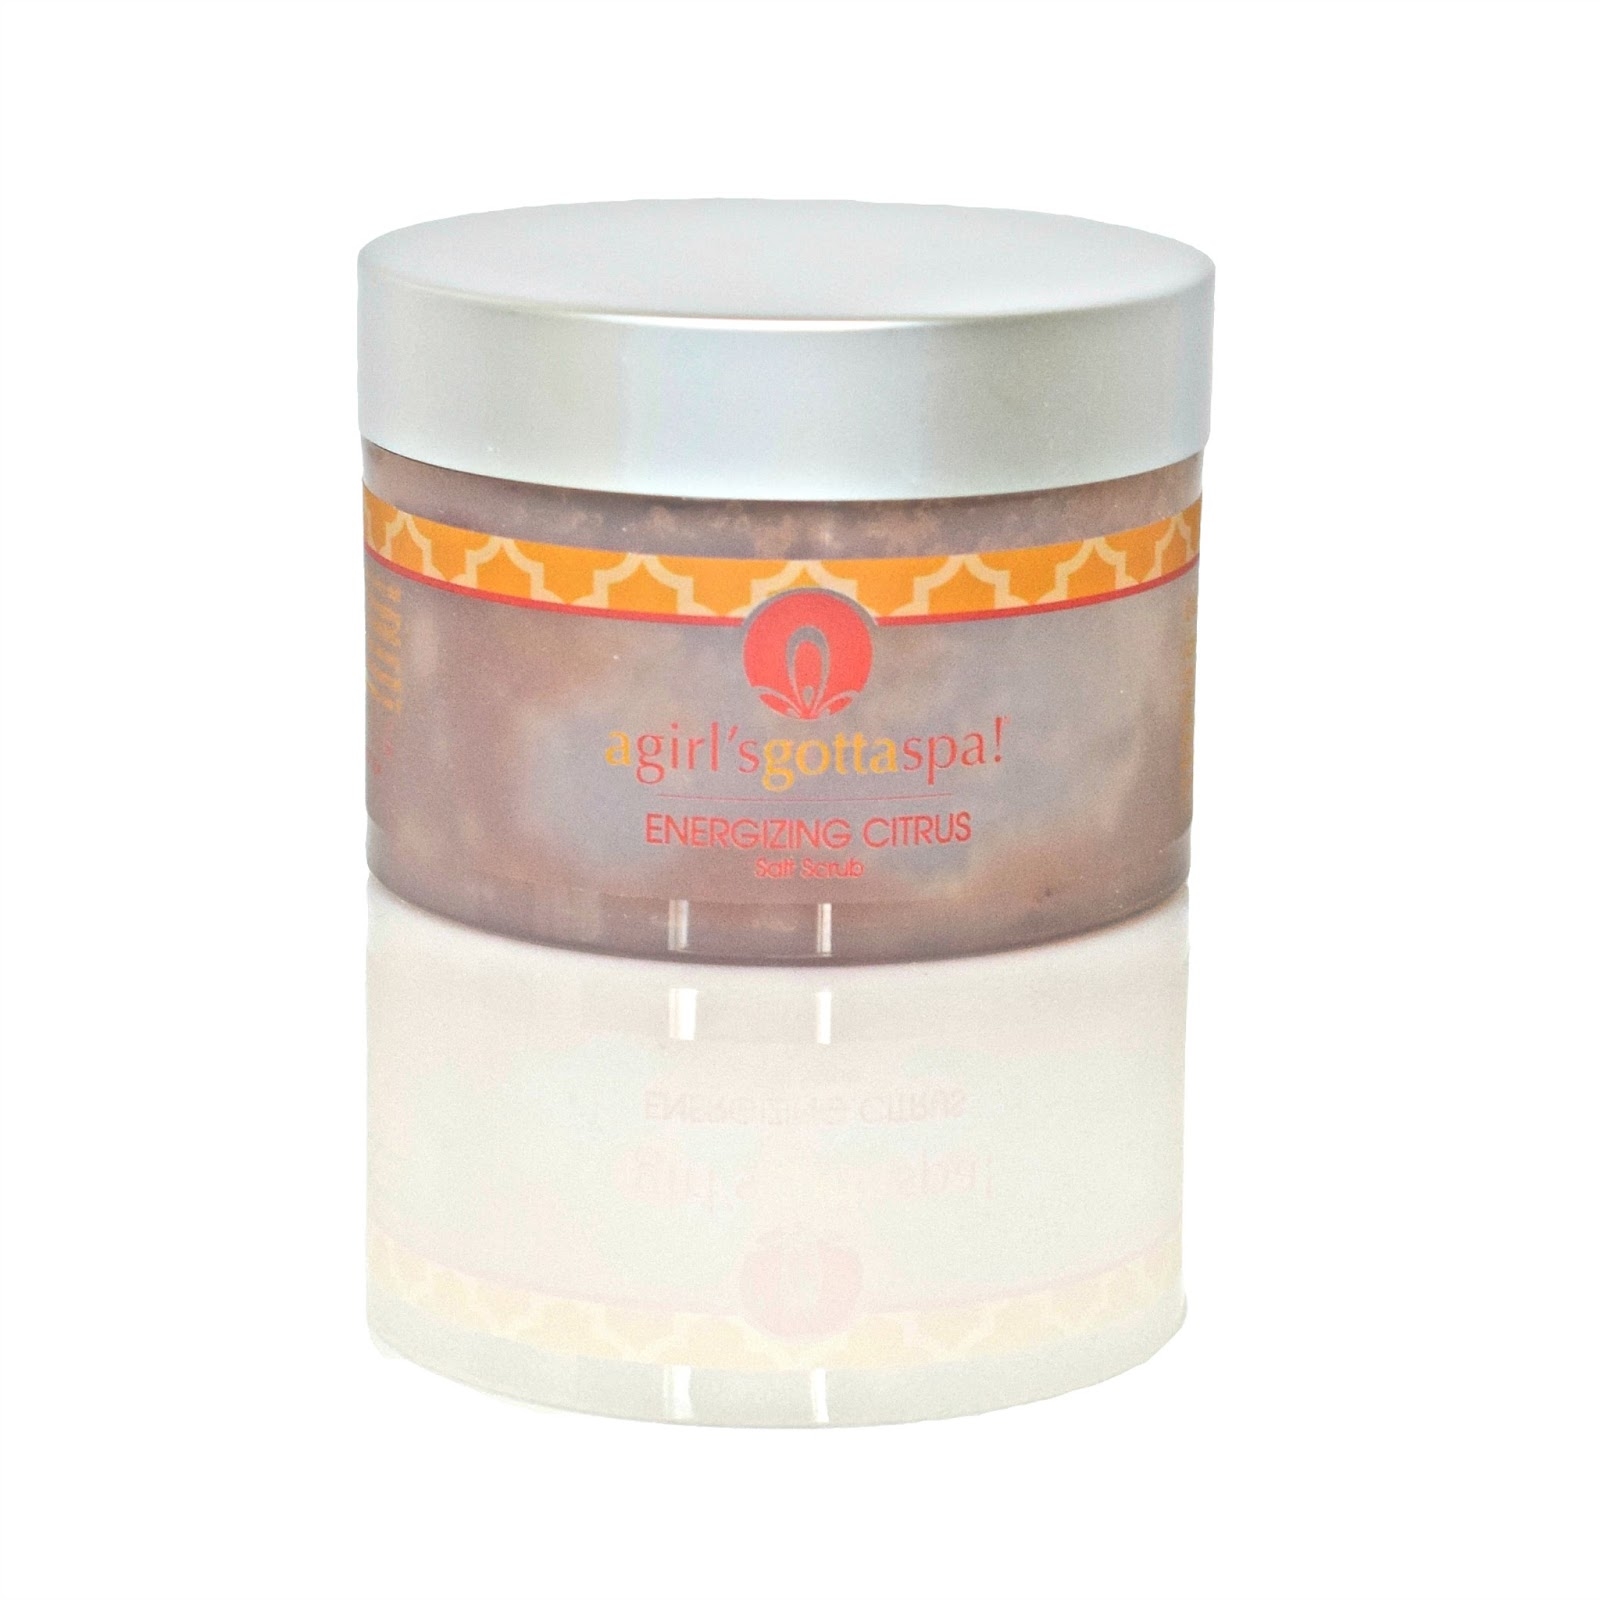 A Girl's Gotta Spa Energizing Citrus Salt Scrub notesfrommydressingtable.com